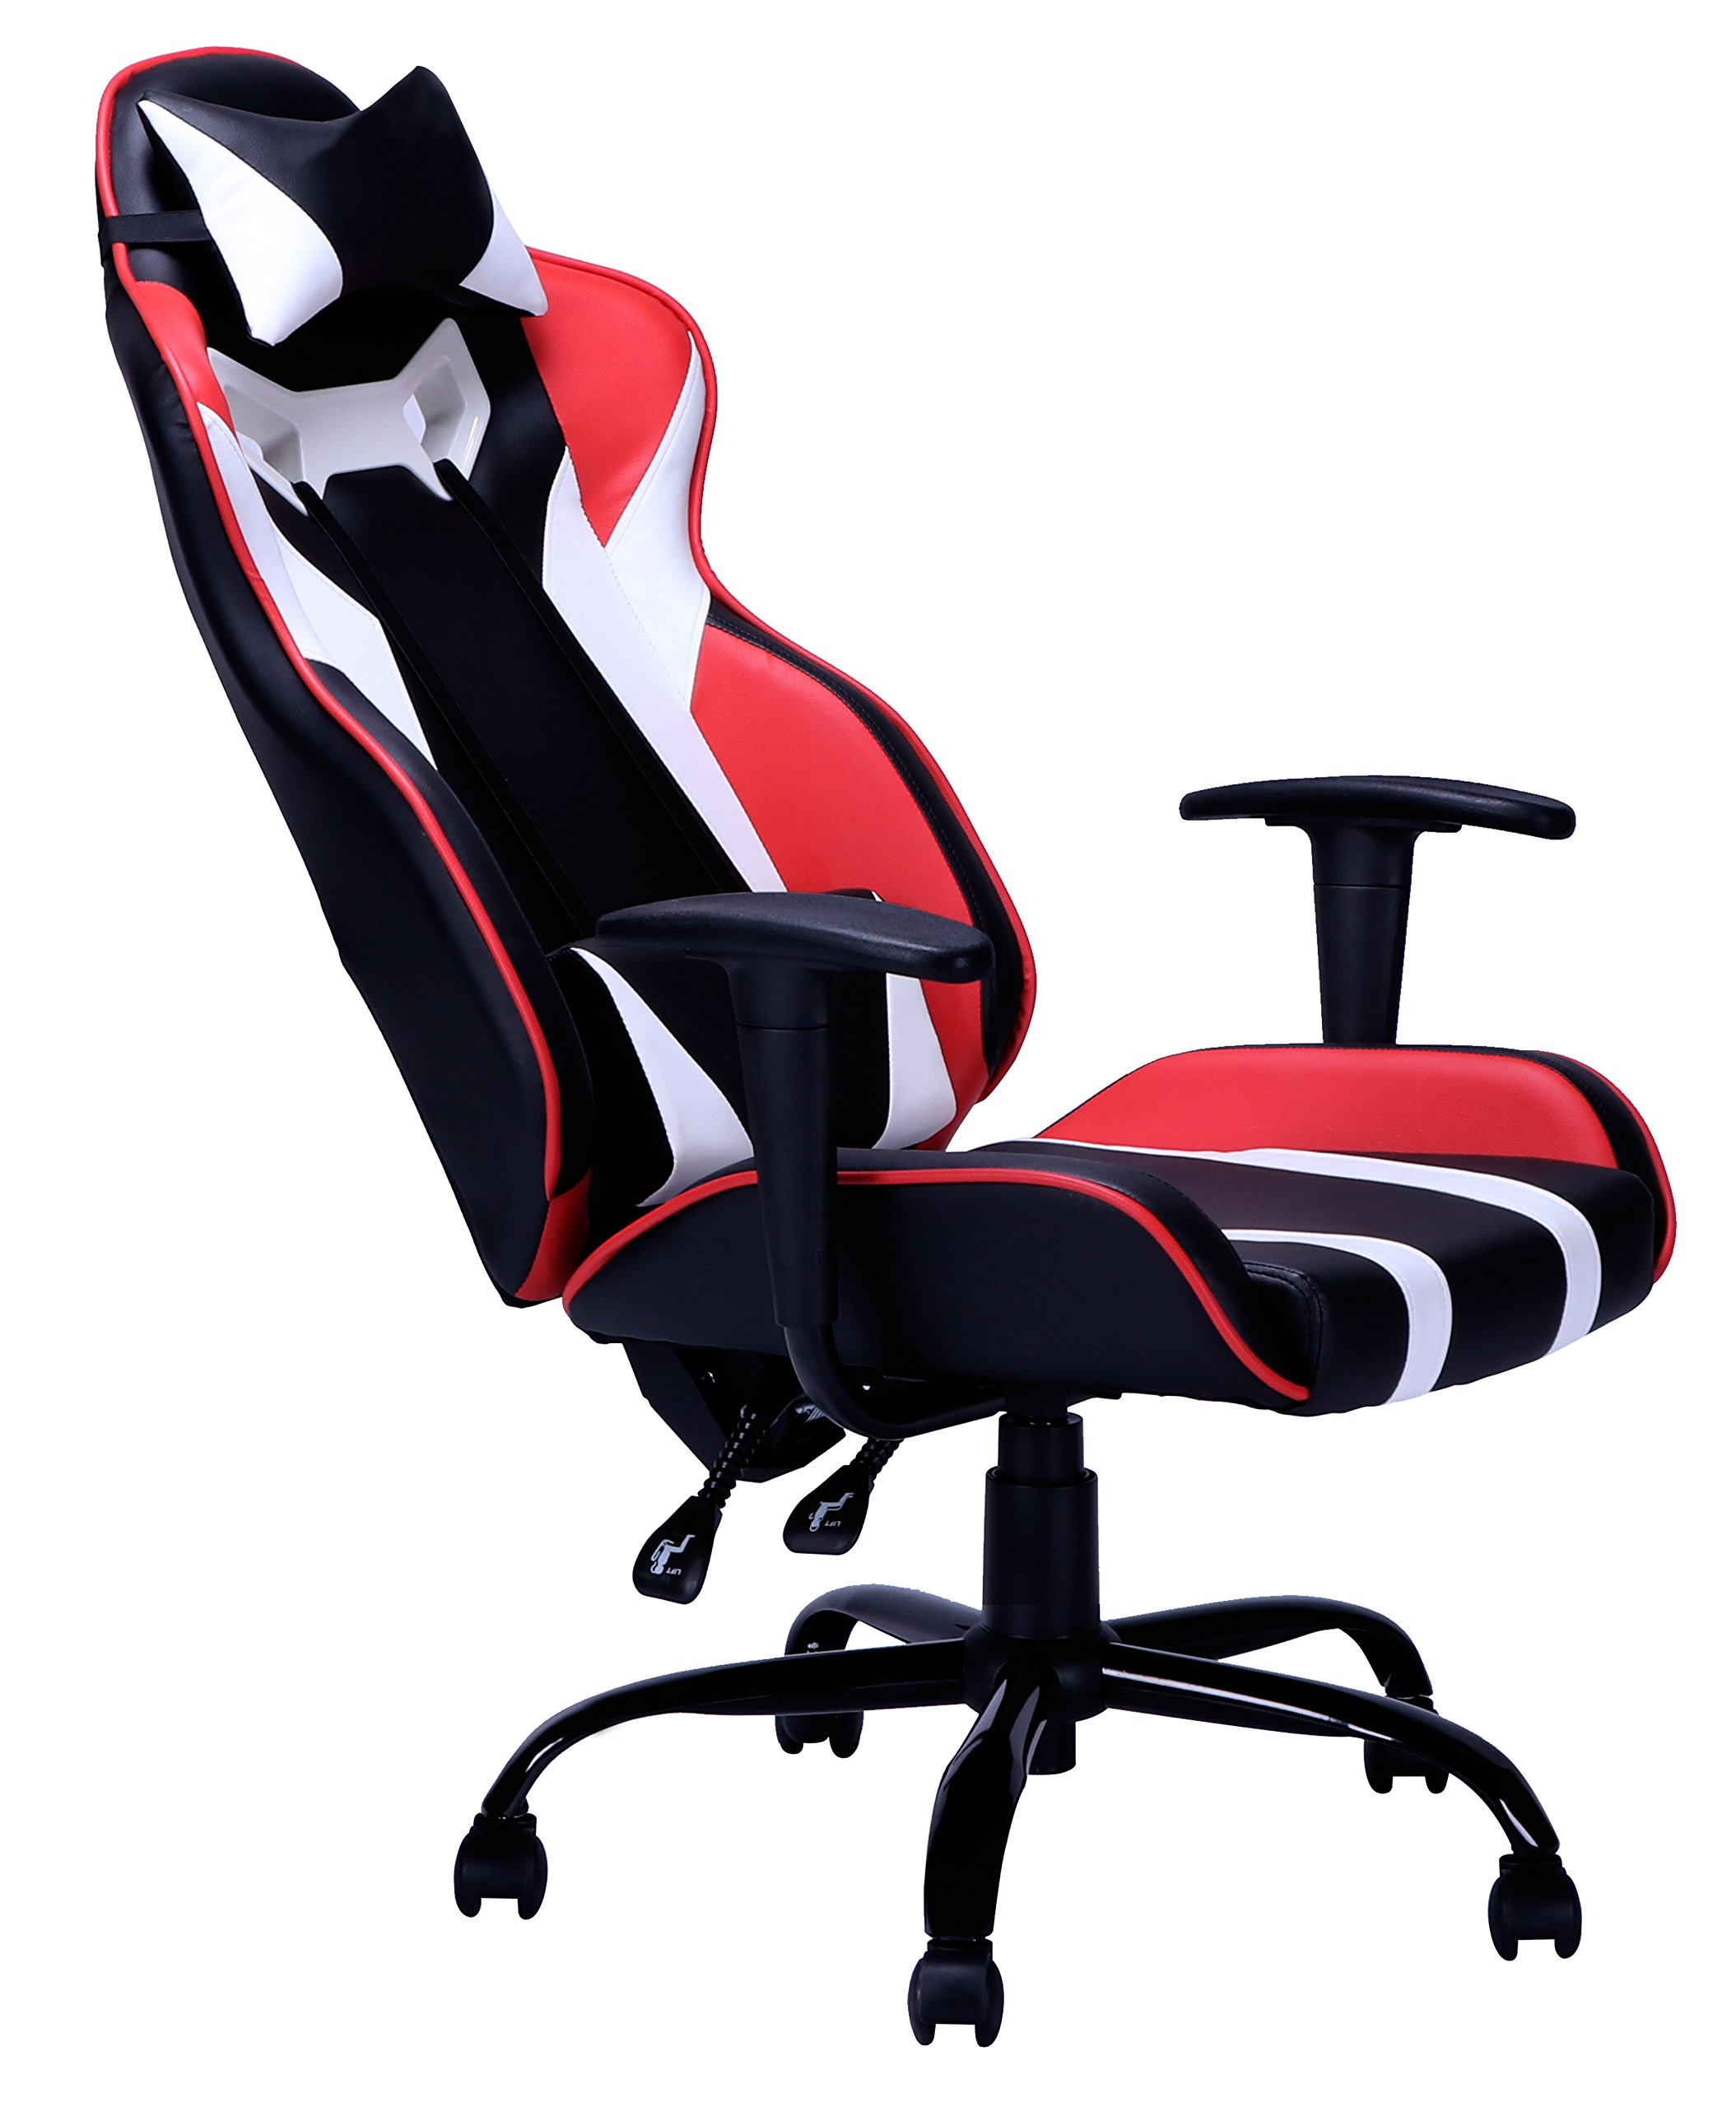 Ergonomic Office Chair PC Gaming Chair Desk Chair Executive Task Computer Chair Back Support Modern PU Pad Armrest Rolling Swivel Chair for Home & Office by BestMassage